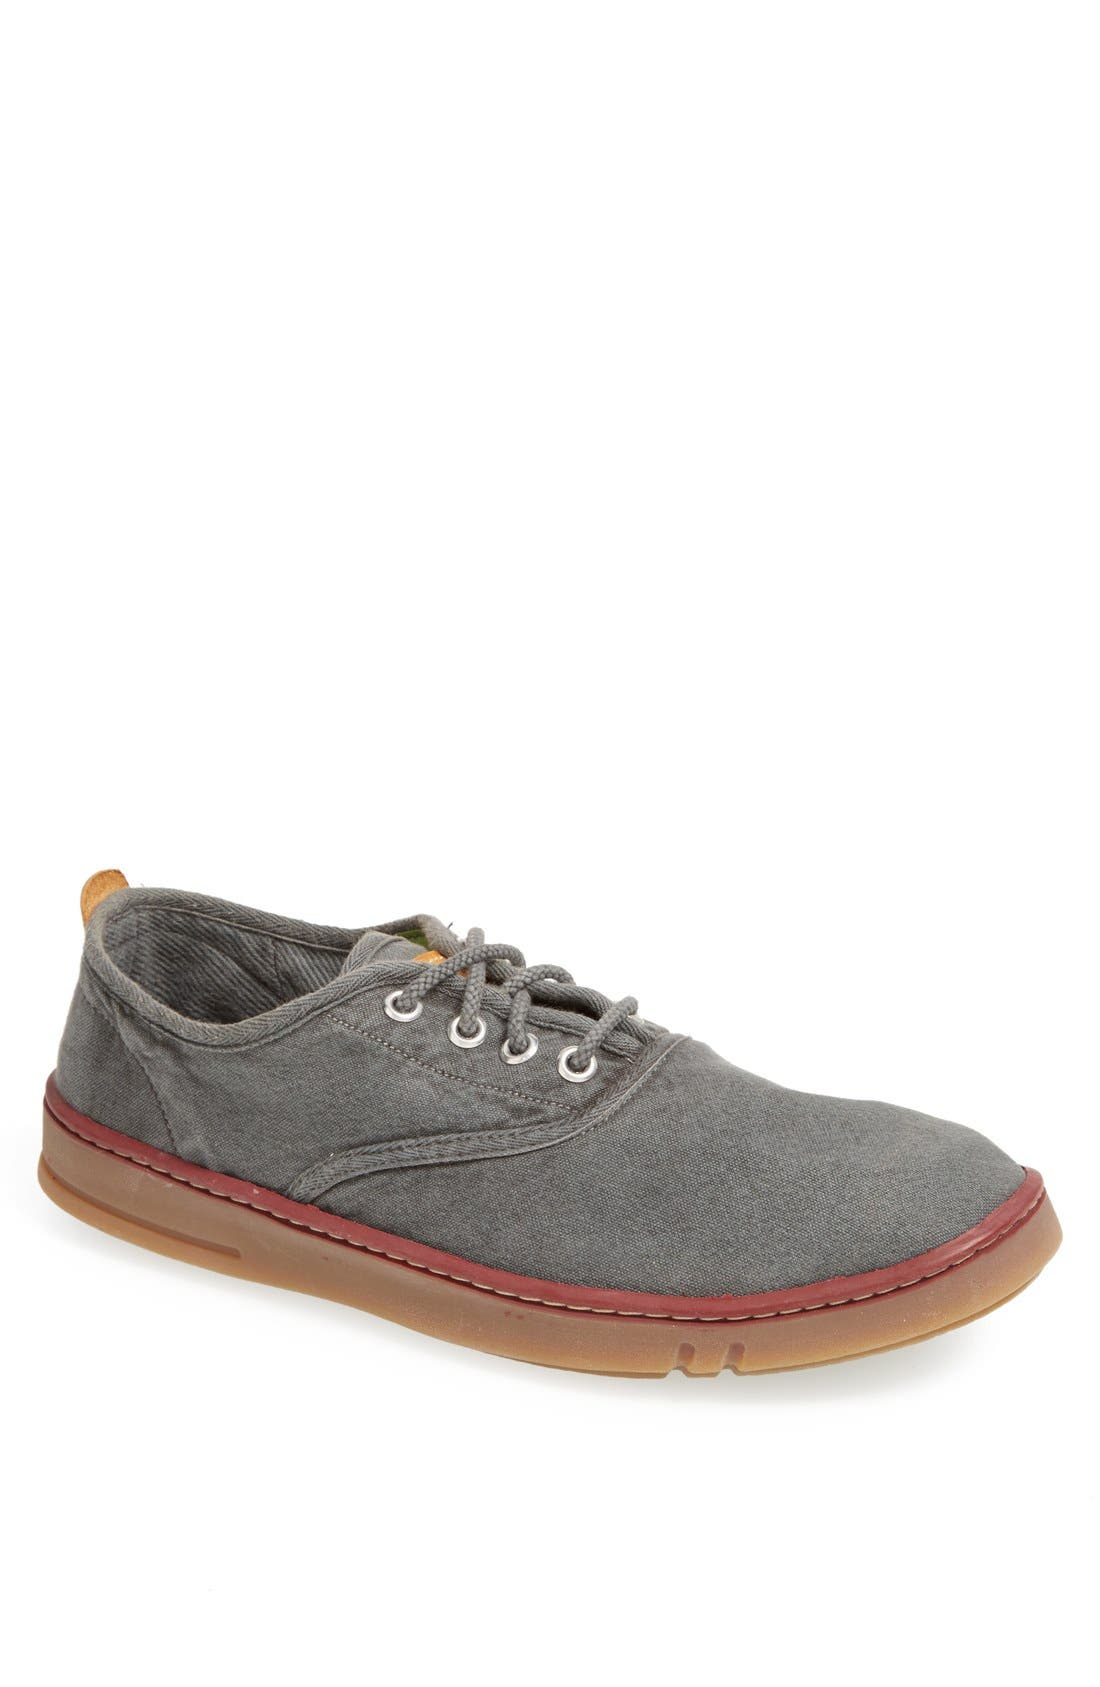 Main Image - Timberland Earthkeepers® 'Hookset' Oxford Sneaker